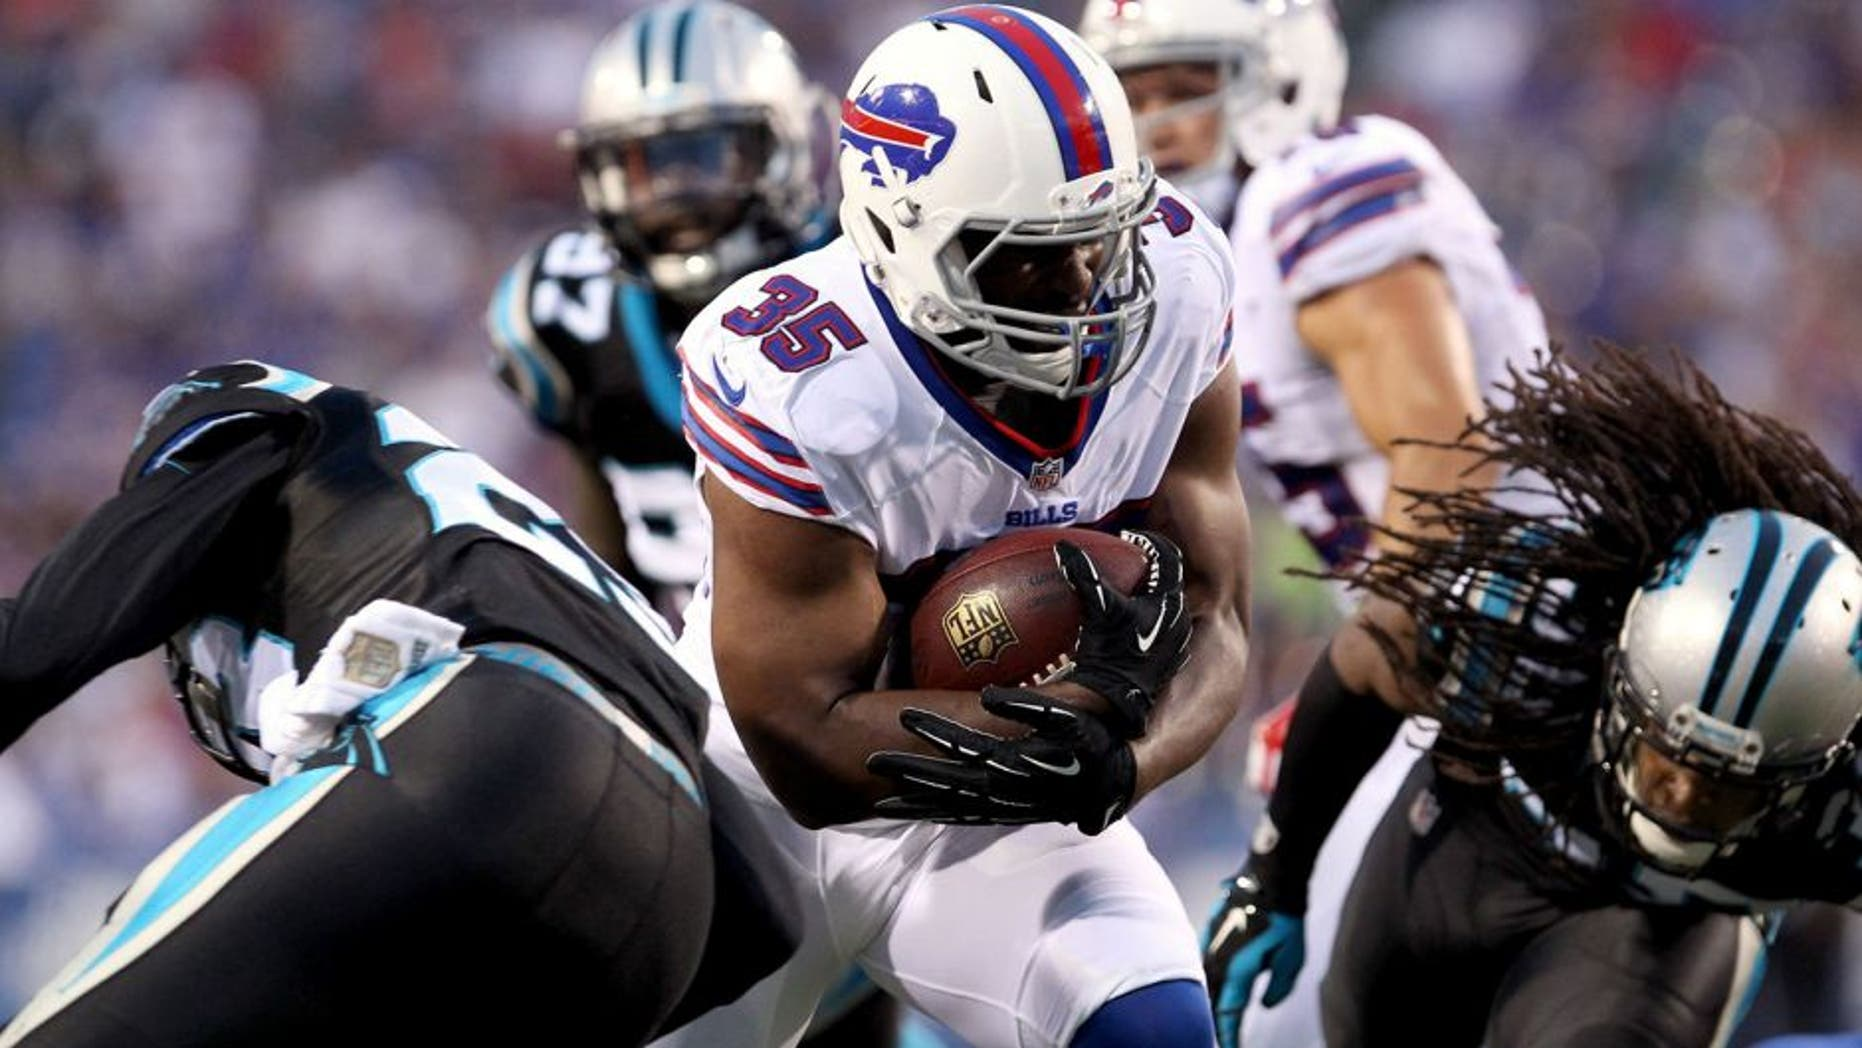 Aug 14, 2015; Orchard Park, NY, USA; Buffalo Bills running back Bryce Brown (35) runs the ball during the first half against the Carolina Panthers in a preseason NFL football game at Ralph Wilson Stadium. Mandatory Credit: Timothy T. Ludwig-USA TODAY Sports